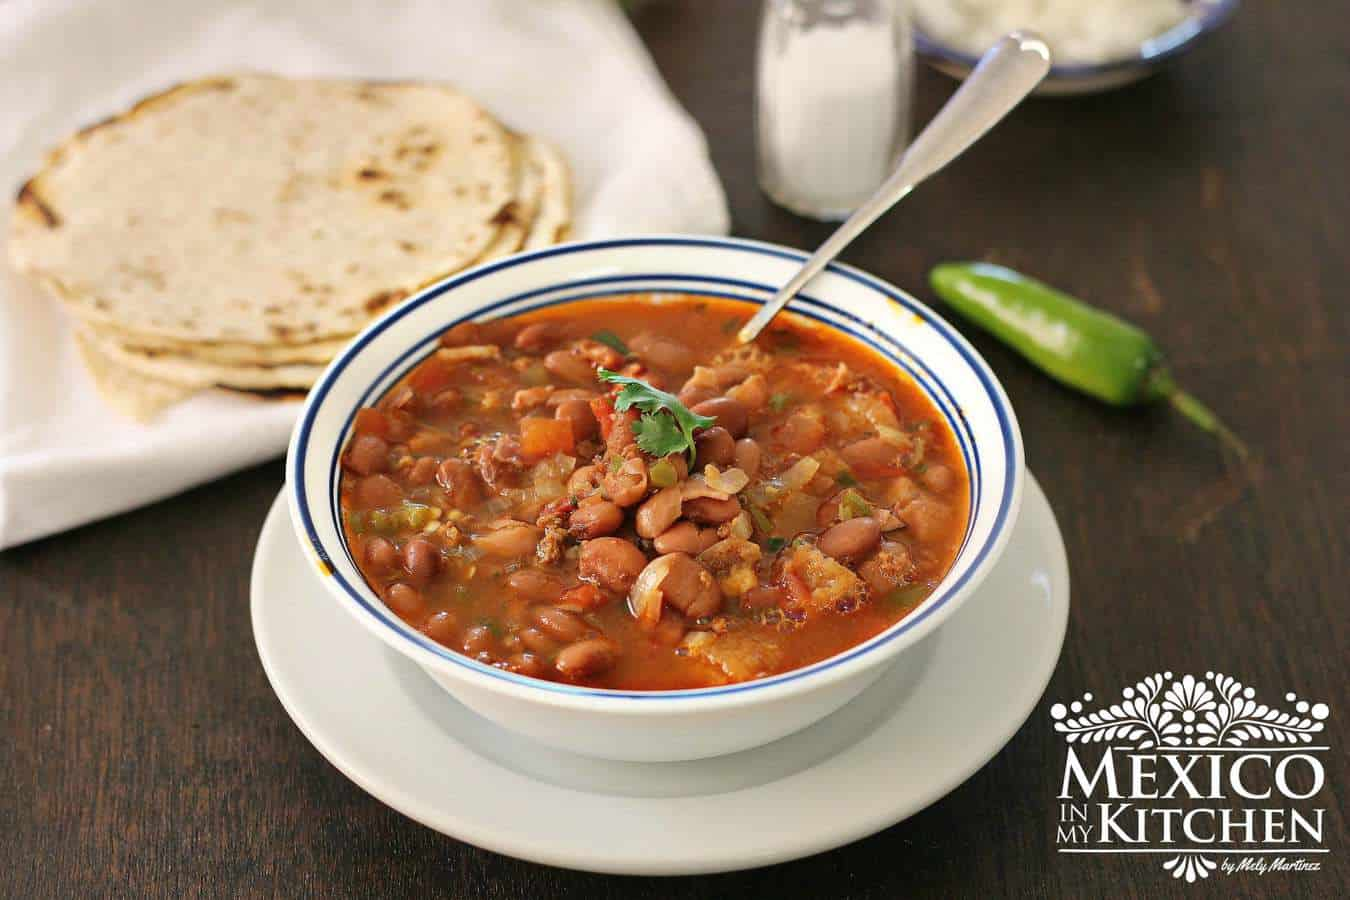 Charro beans cowboy beans recipe | Mexican Recipes